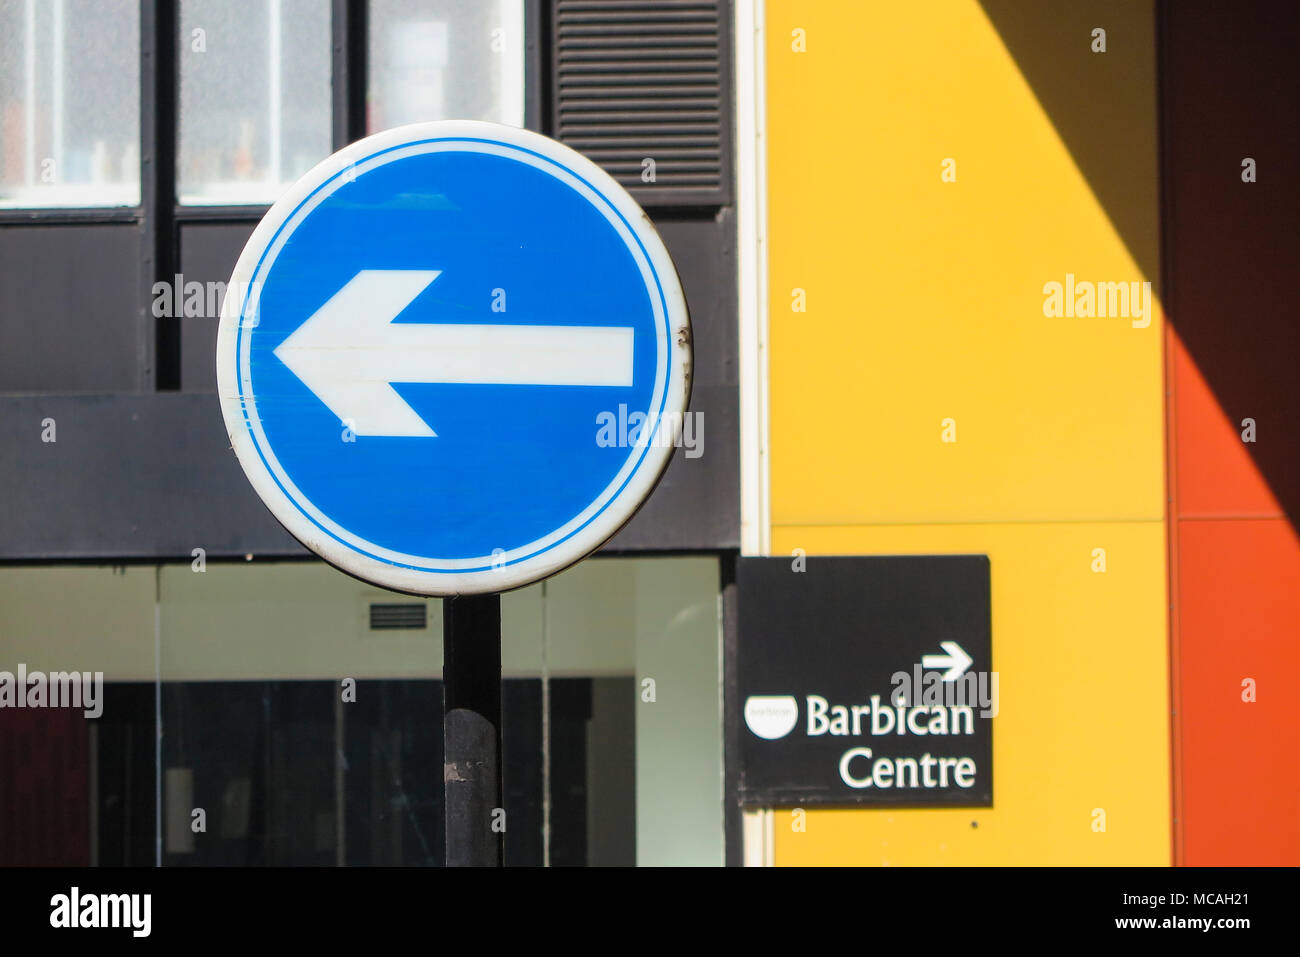 A one way sign to the left and a sign towards the Barbican Centre on the right - Stock Image